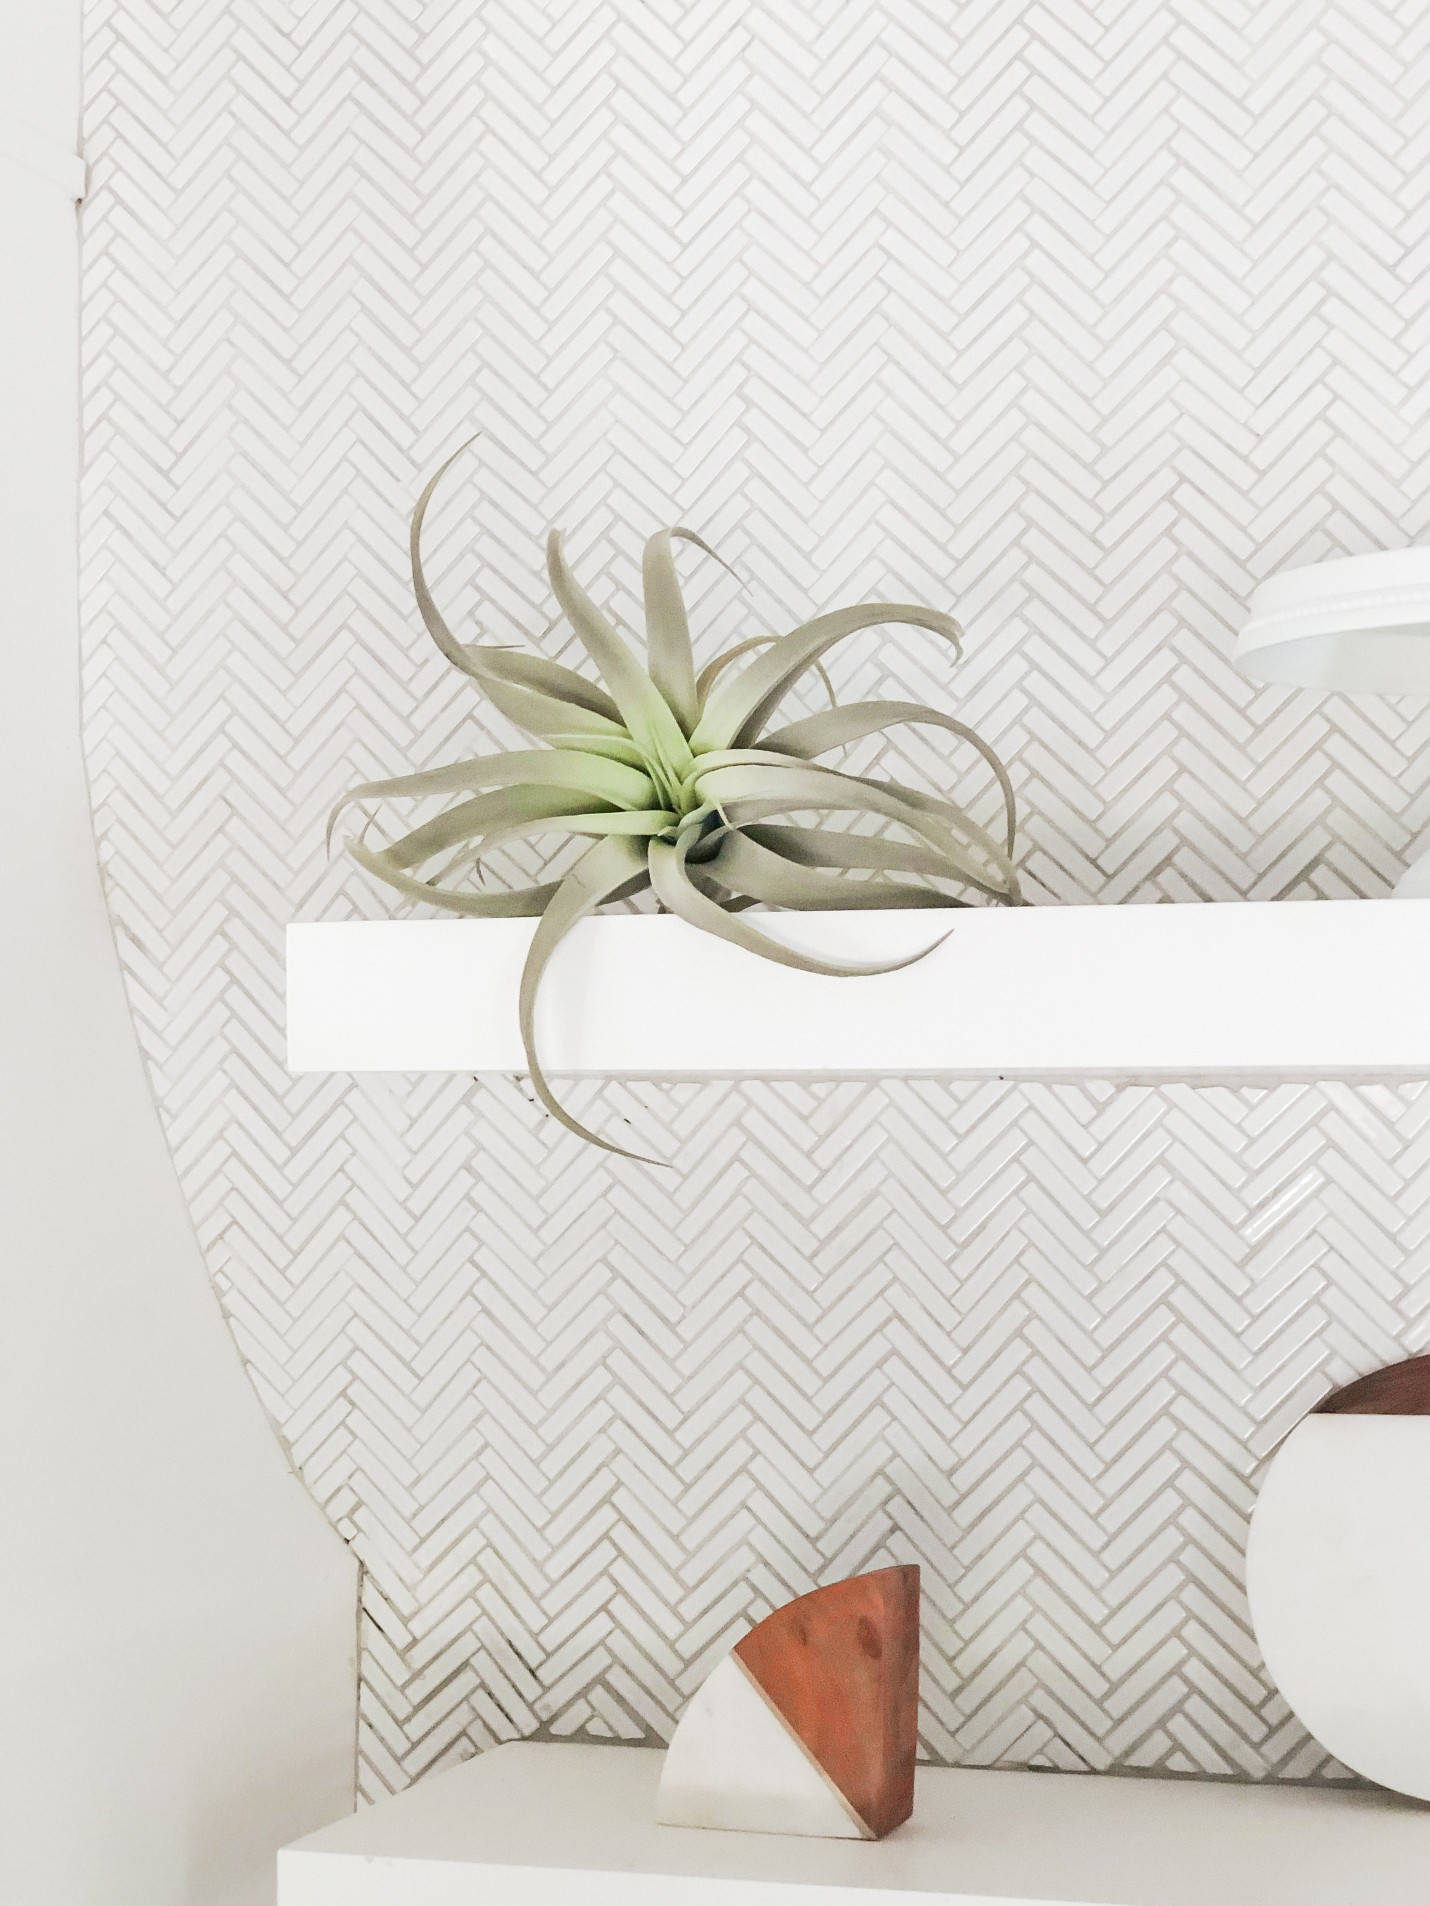 Our House Plants - Air Plants Care Tips